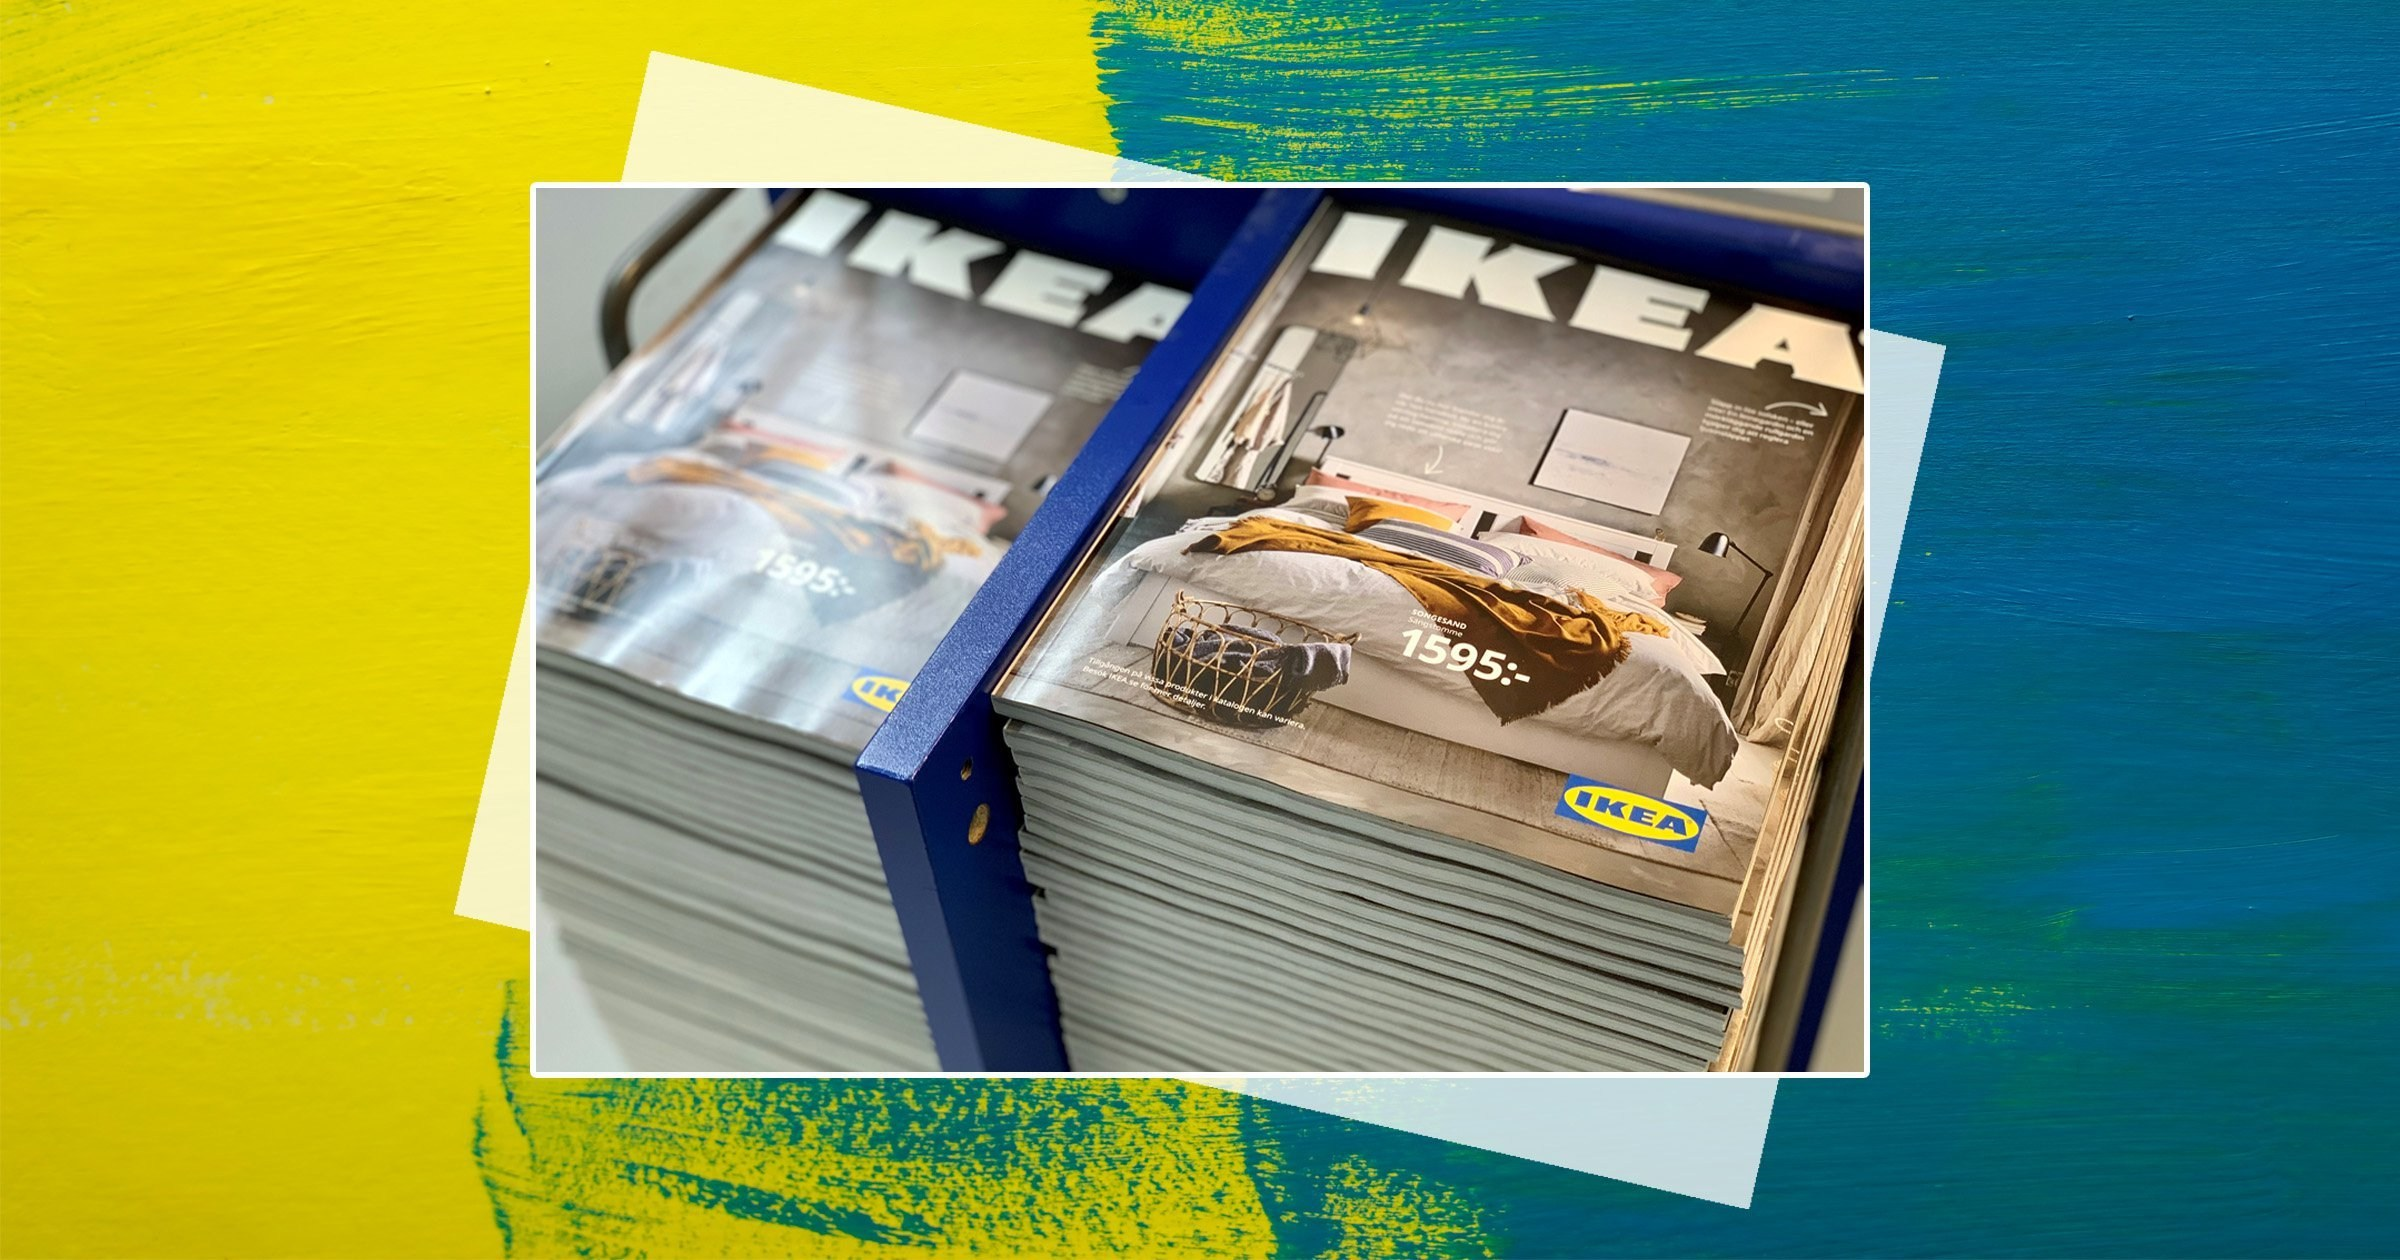 Ikea ditches catalogue after almost 70 years